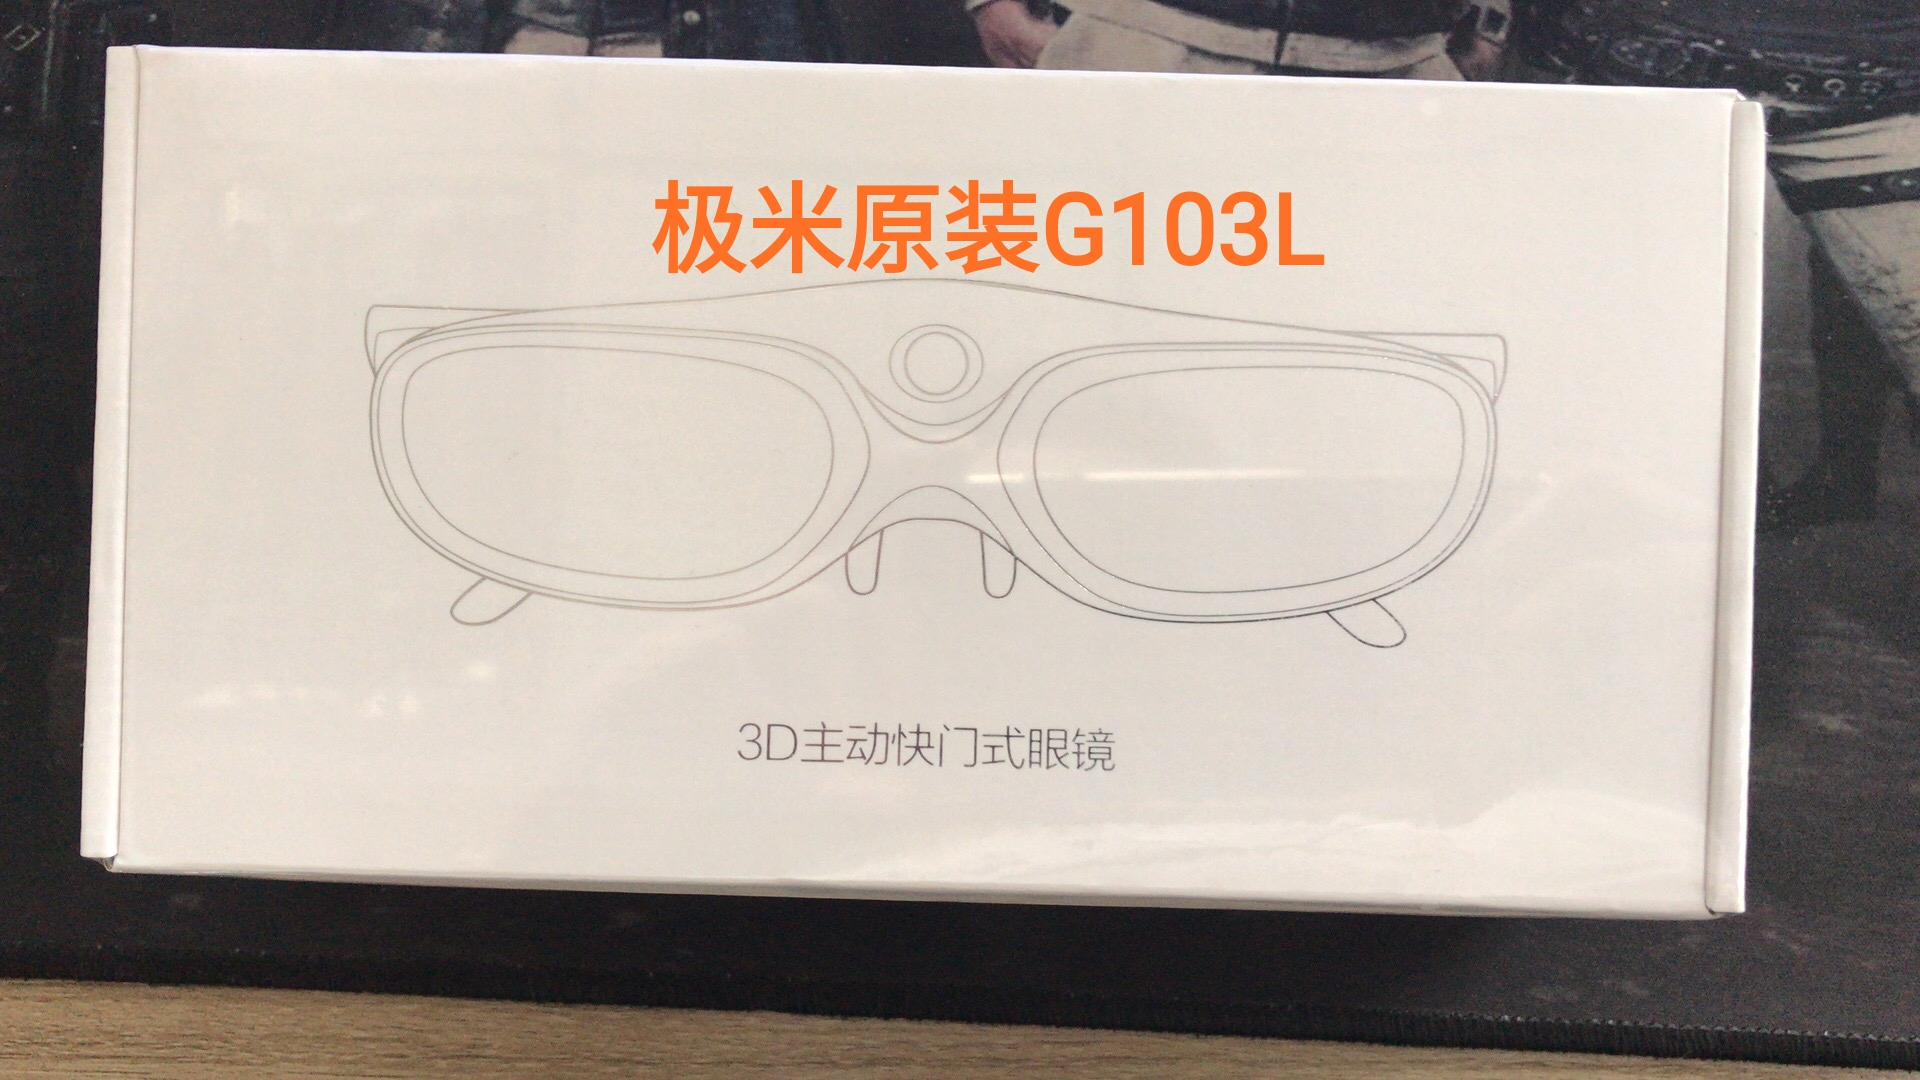 Polar meter 3D glasses G105LG103L long-focus machine universal seconds clip-on glasses suitable for myopia 羣